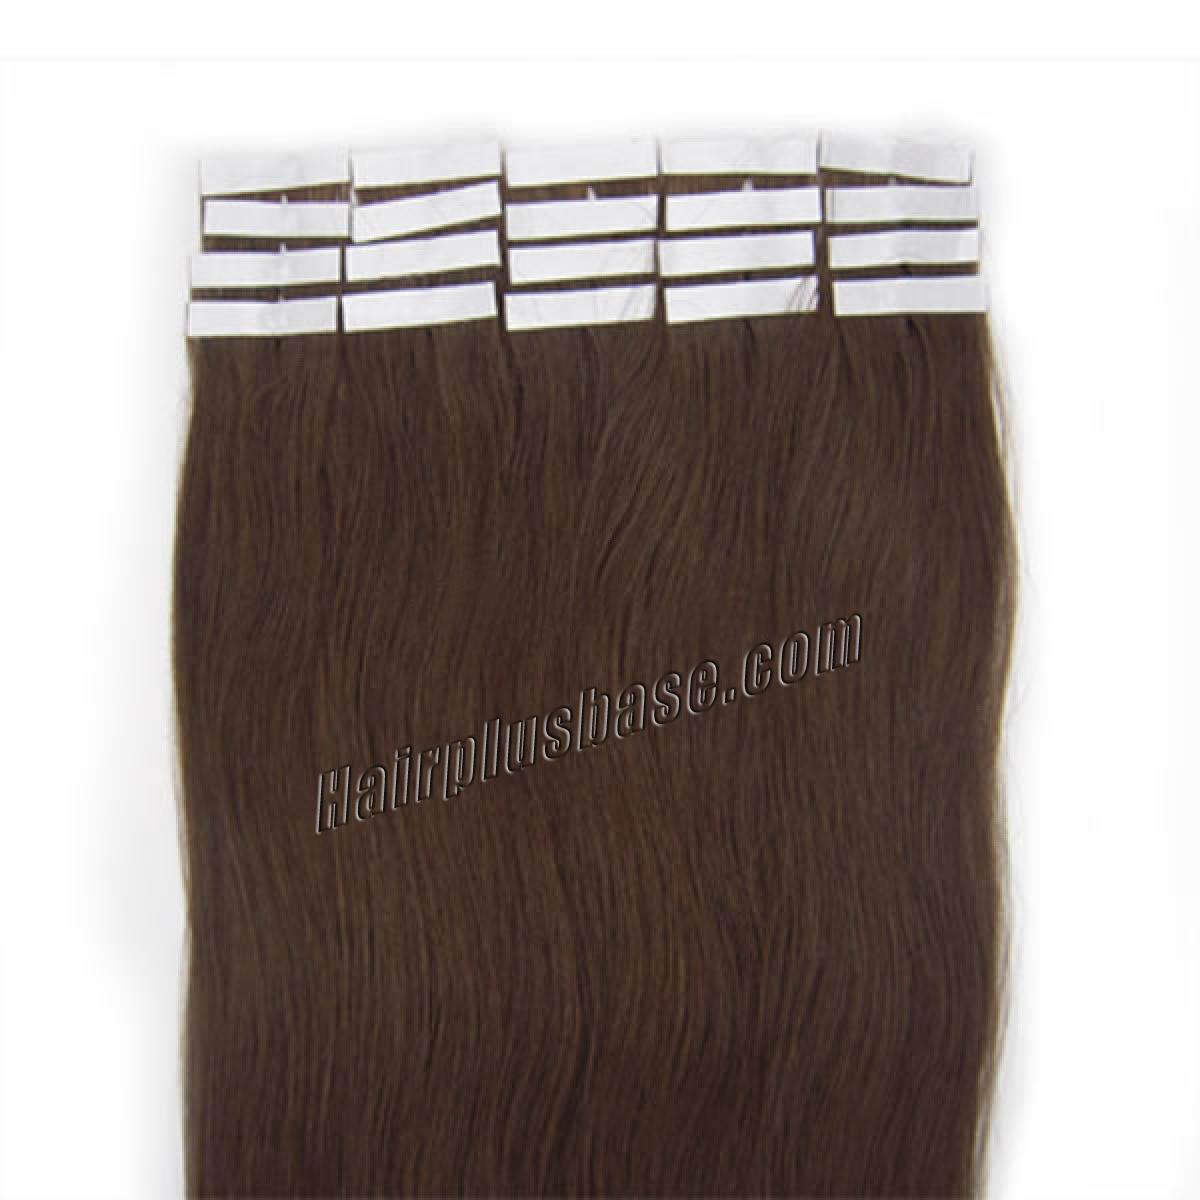 22 Inch #4 Medium Brown Tape In Human Hair Extensions 20pcs no 2